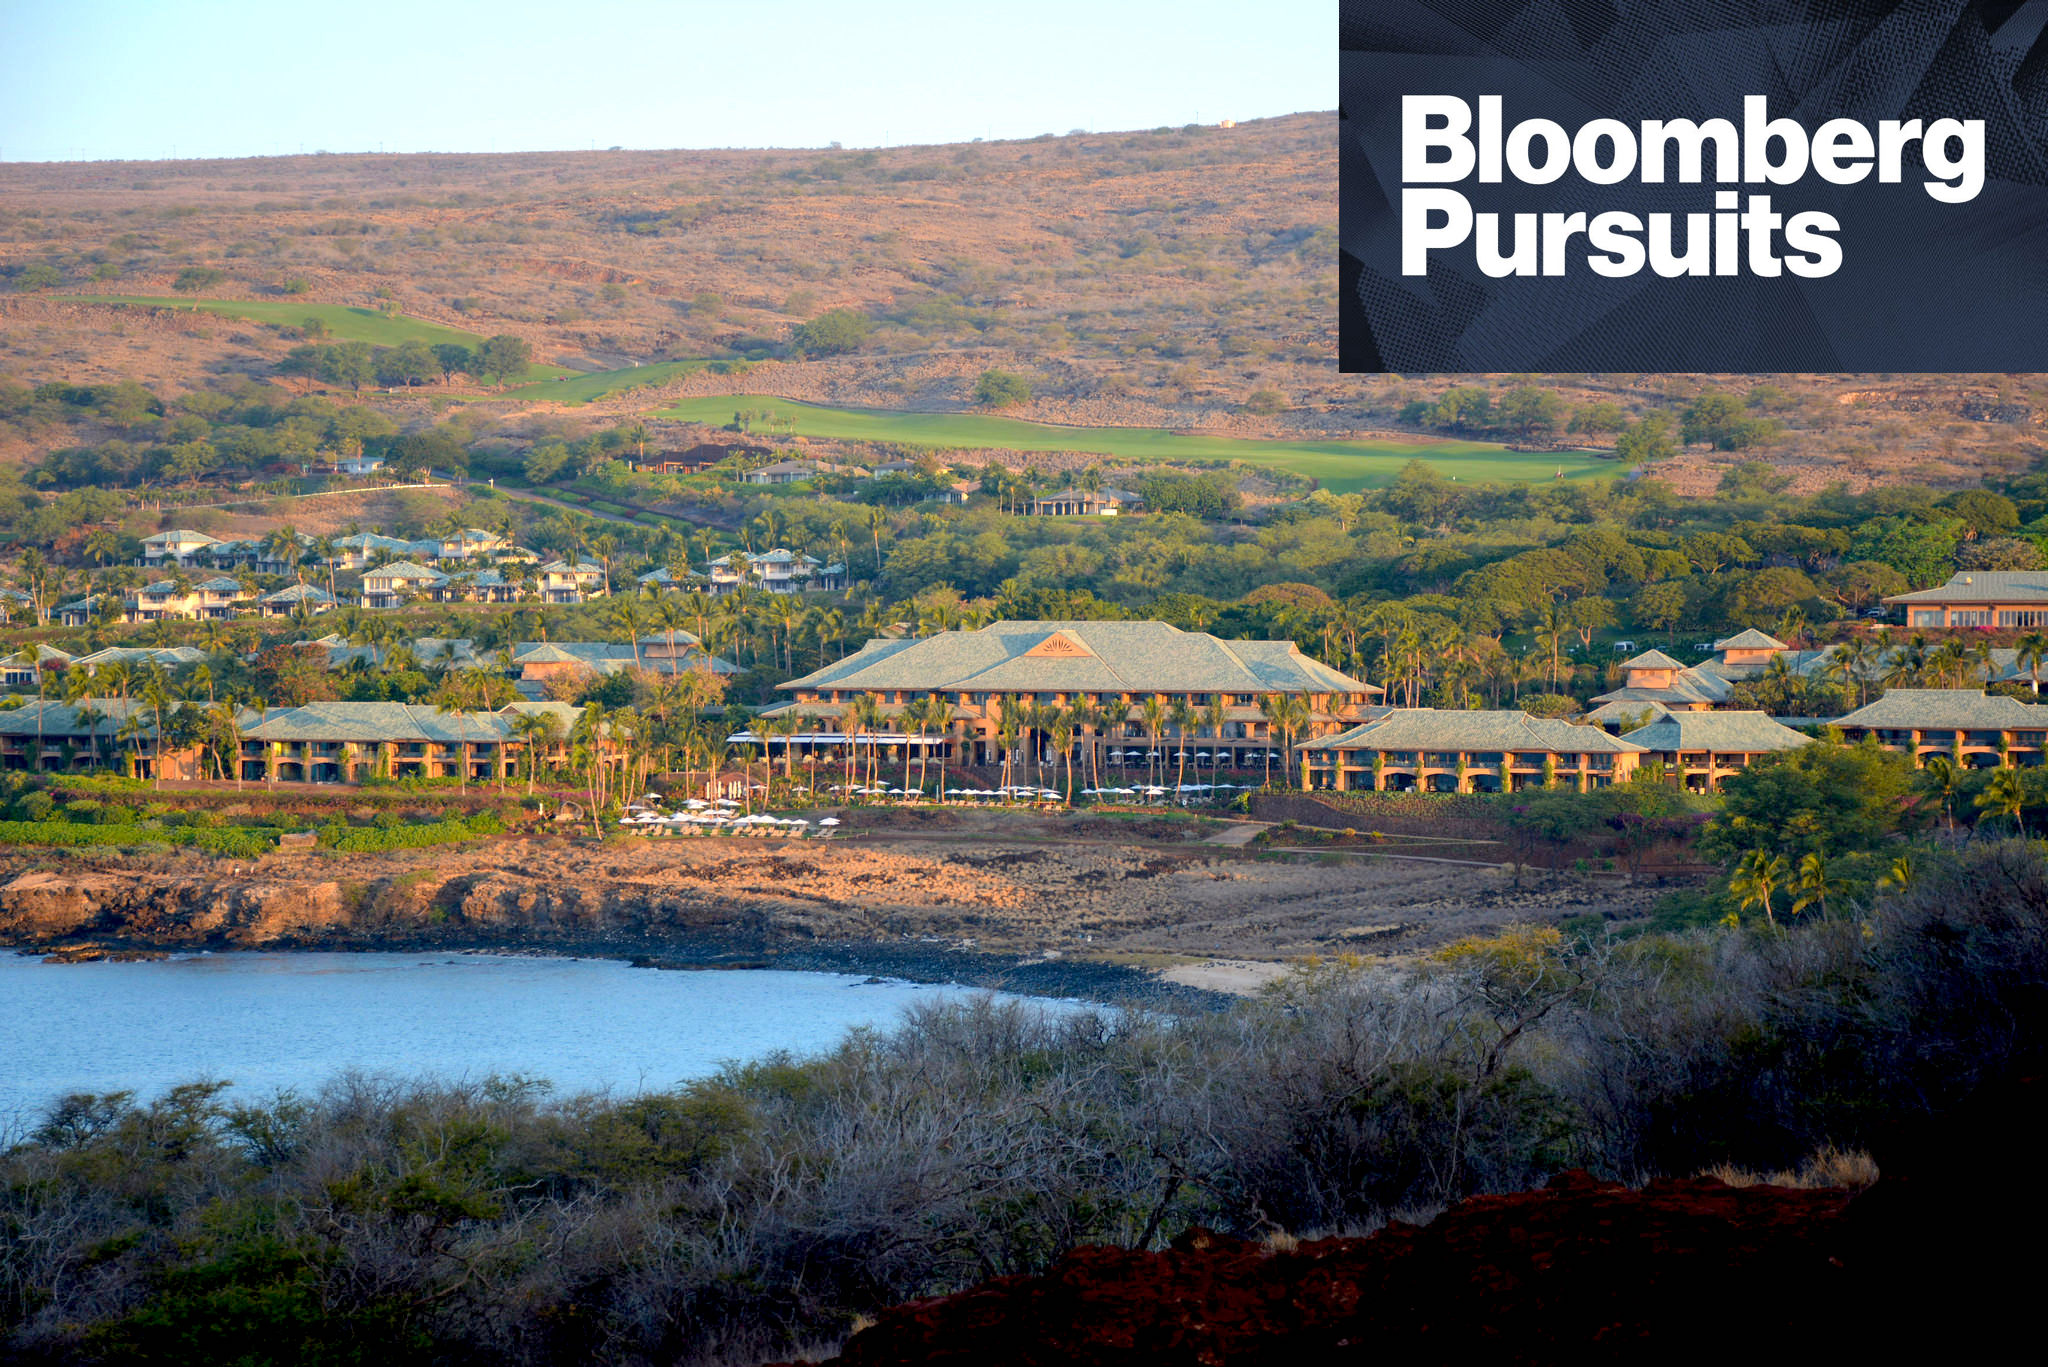 Larry Ellison's Private Eden Is Open for Business - My Bloomberg Pursuits feature on the Oracle billionaire's new Four Seasons beach resort on Lanai — an island in the Hawaiian chain that he owns.(Bloomberg — April 2016)